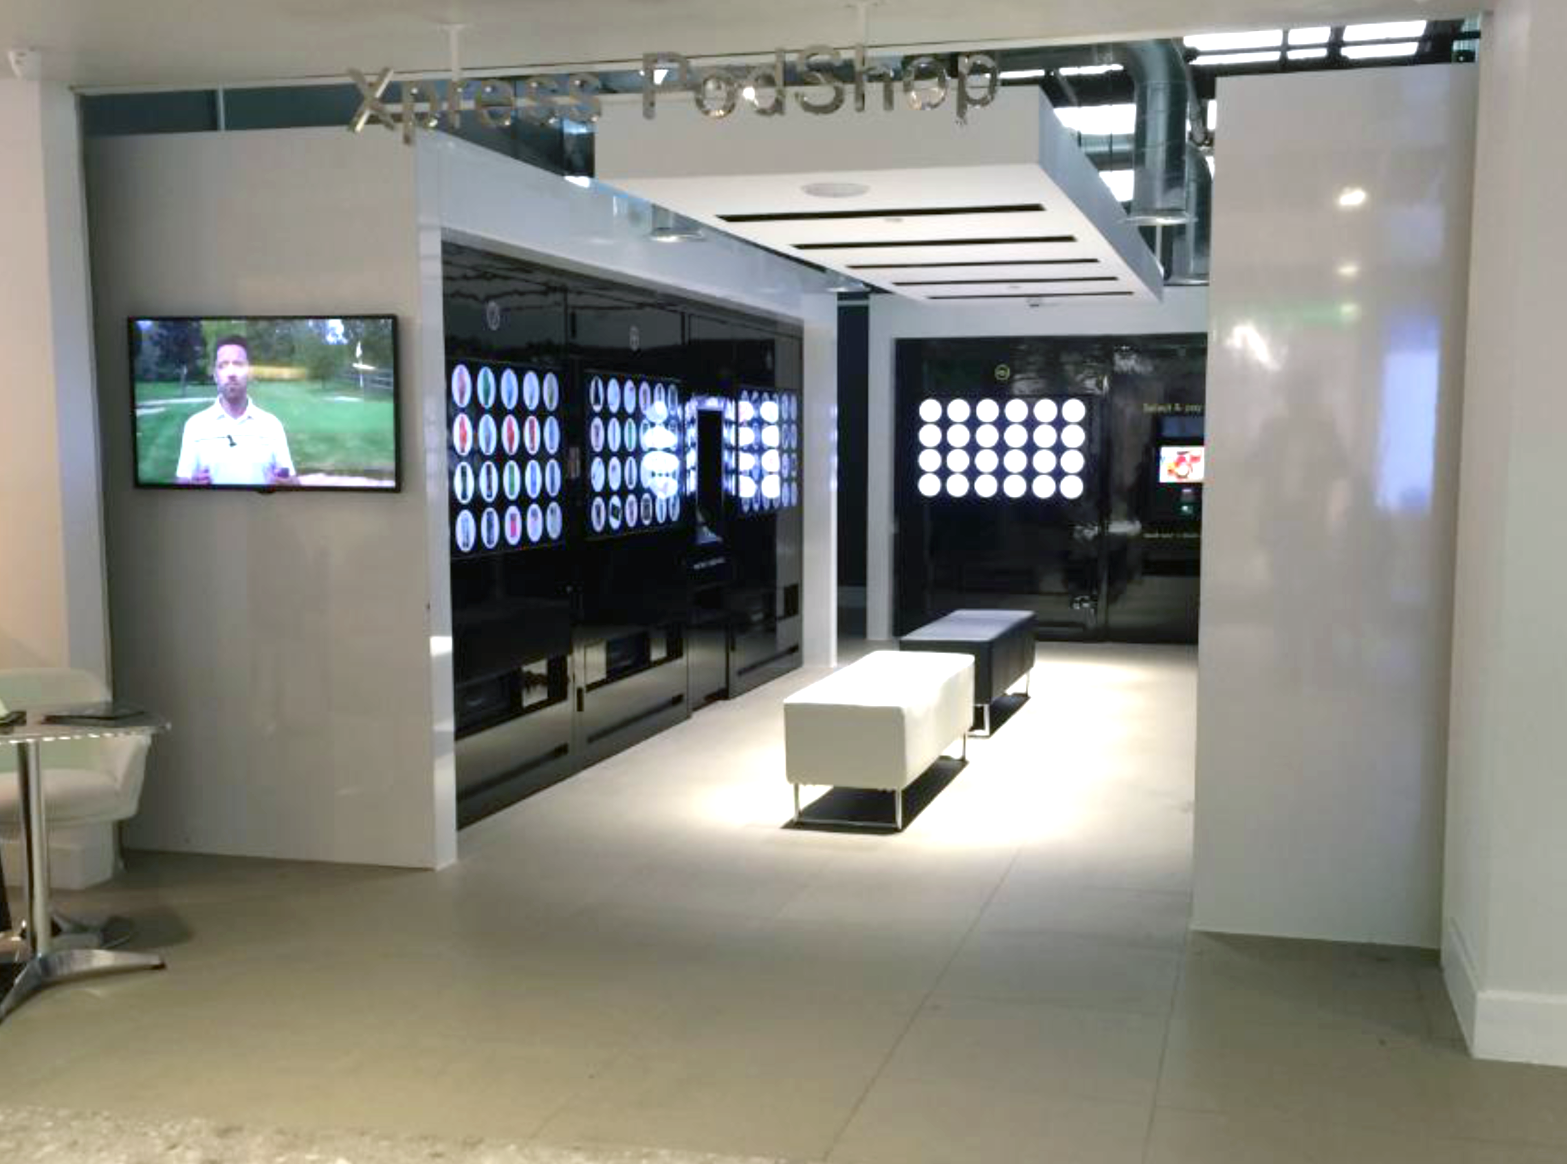 The Pod Shop is the ultimate automatic retail center. The widest variety of products in the world offered in a totally automatic setting.